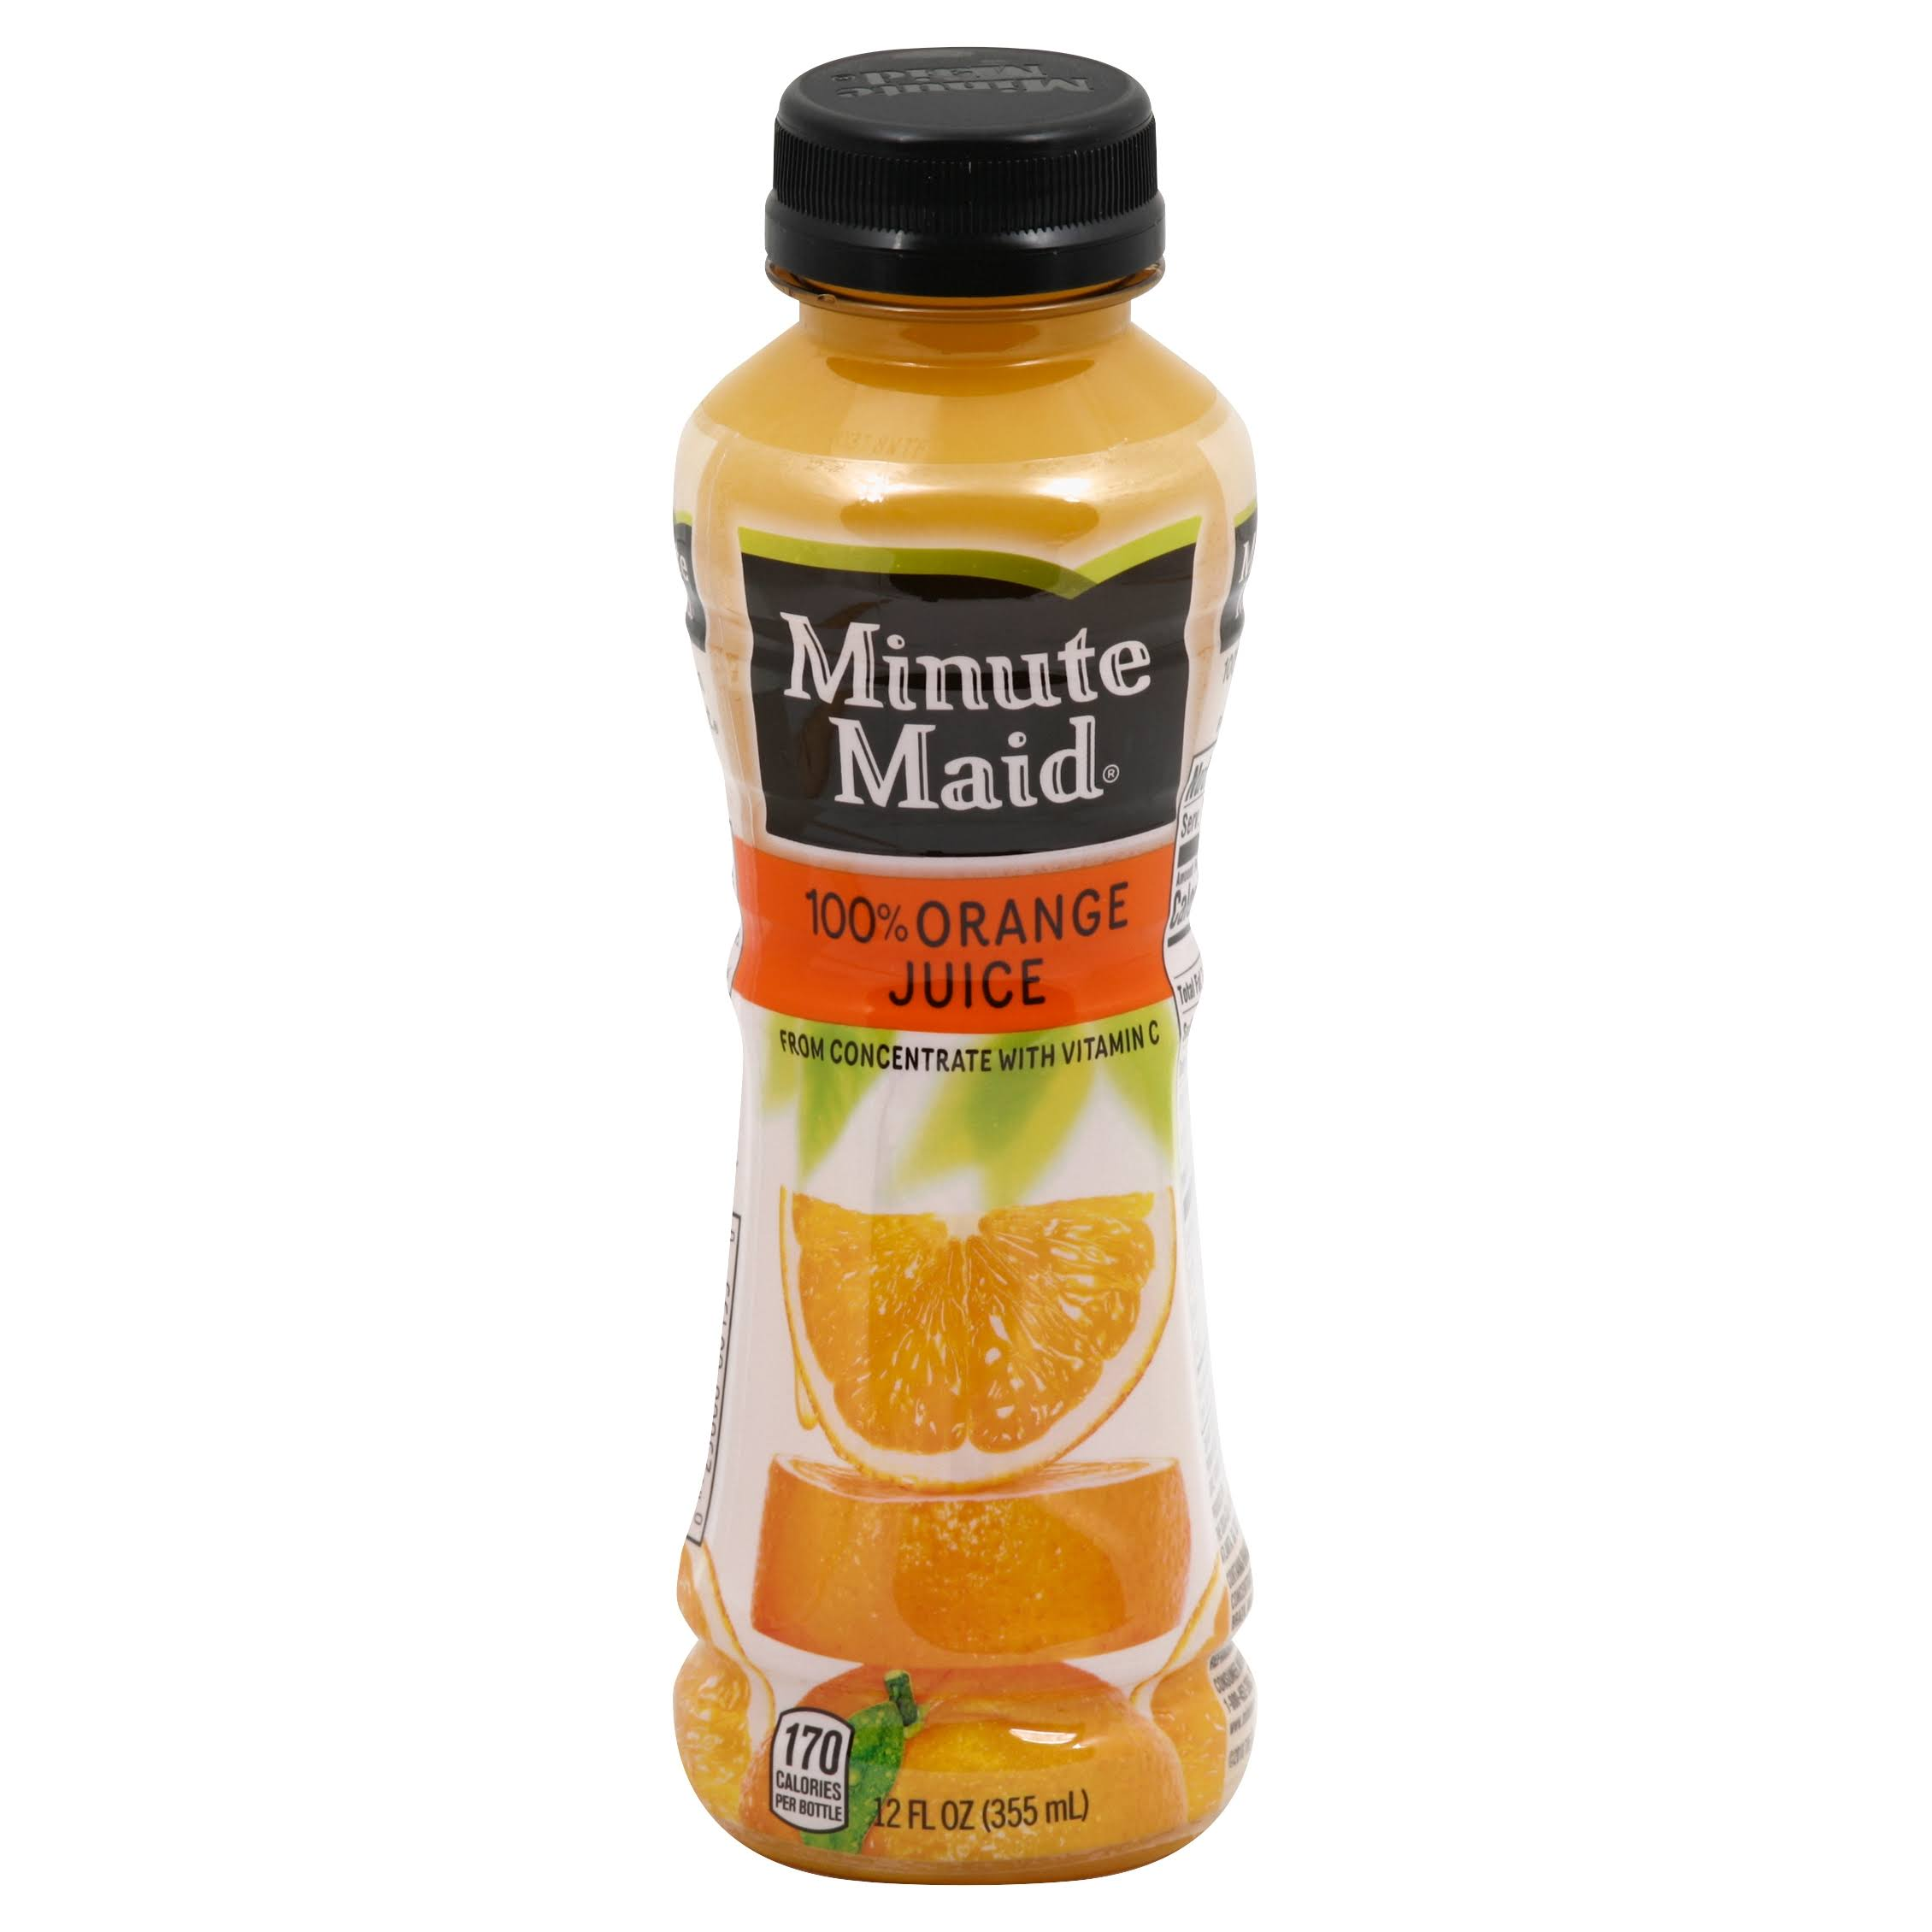 Minute Maid 100% Juice, Orange - 12 fl oz